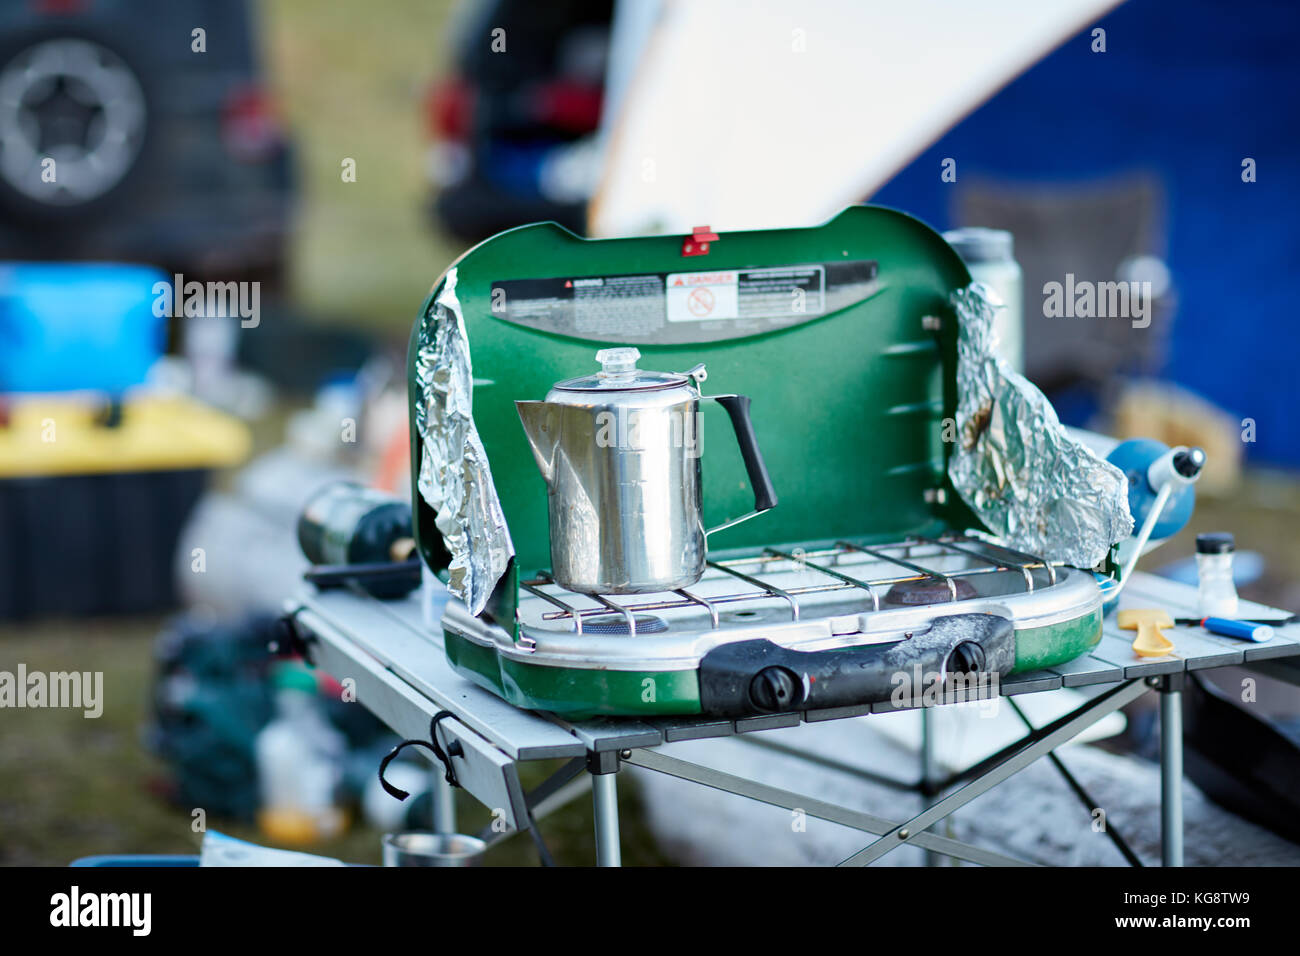 Stainless Steel Coffee Pot Heating On A Small Portable Camping Gas